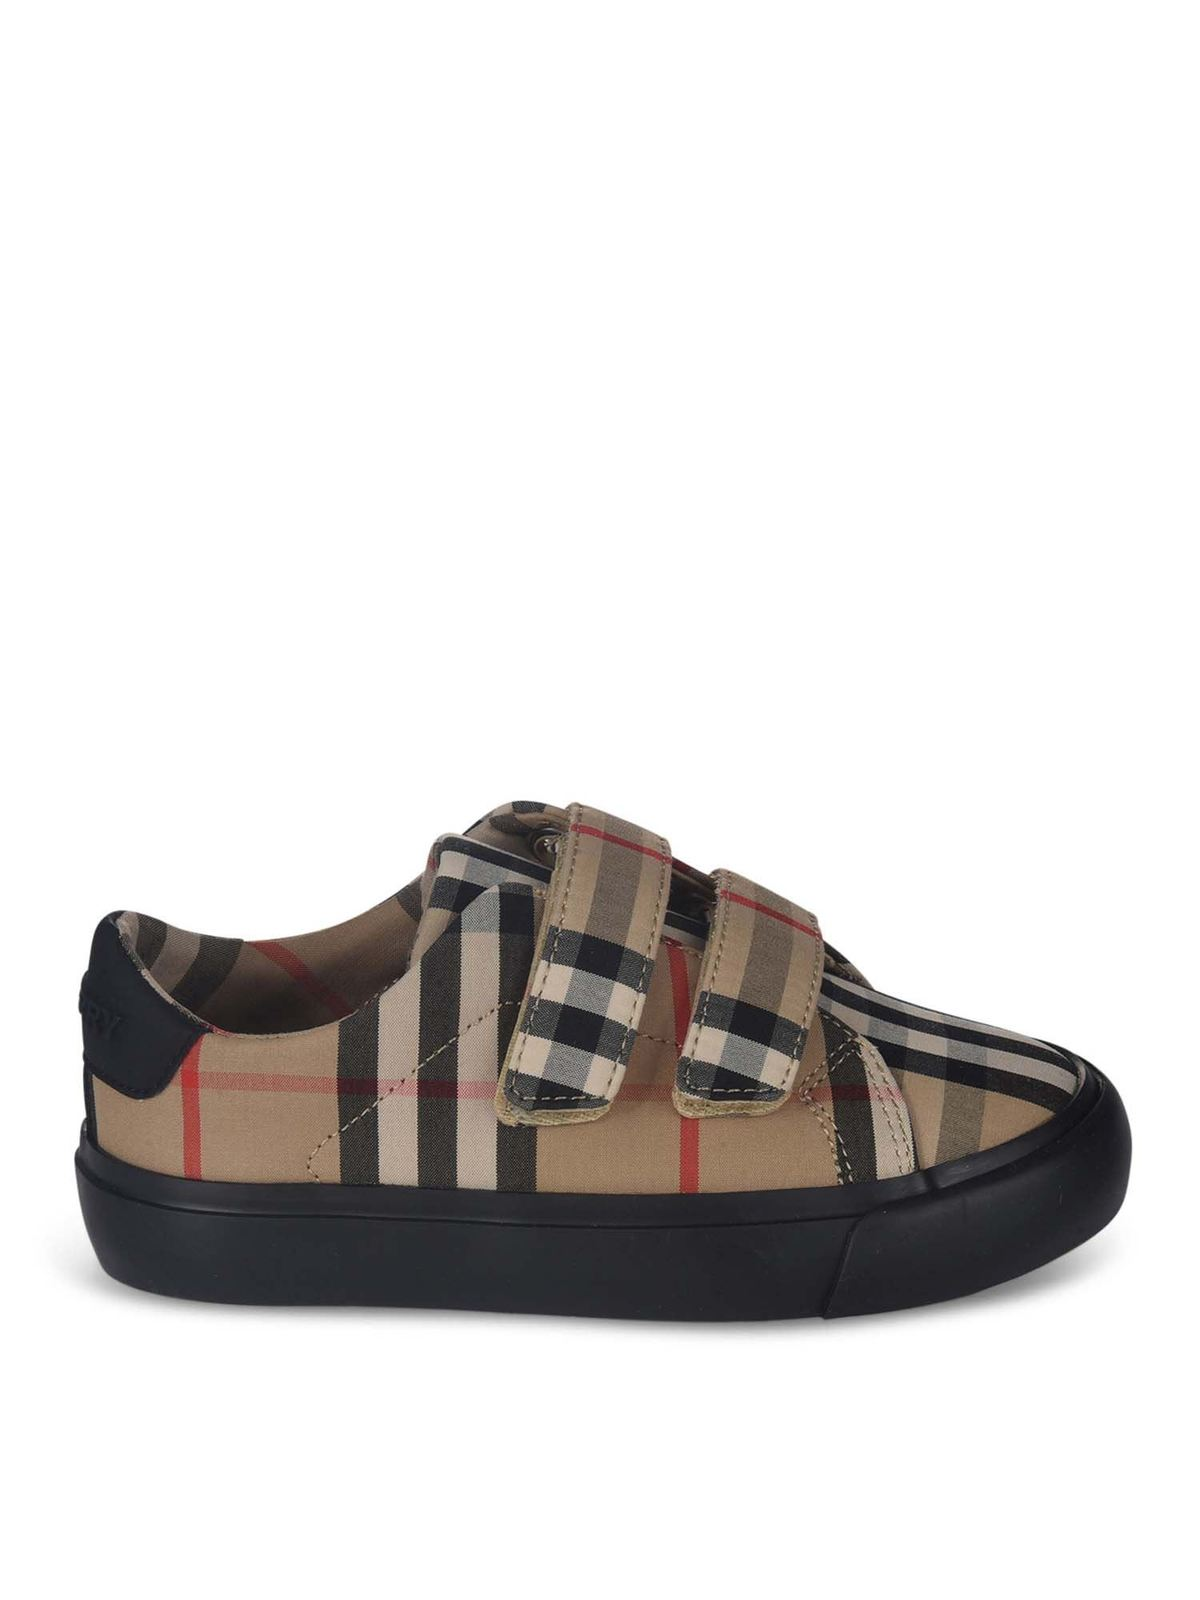 BURBERRY MINI MARKHAM SNEAKERS IN BEIGE AND BLACK